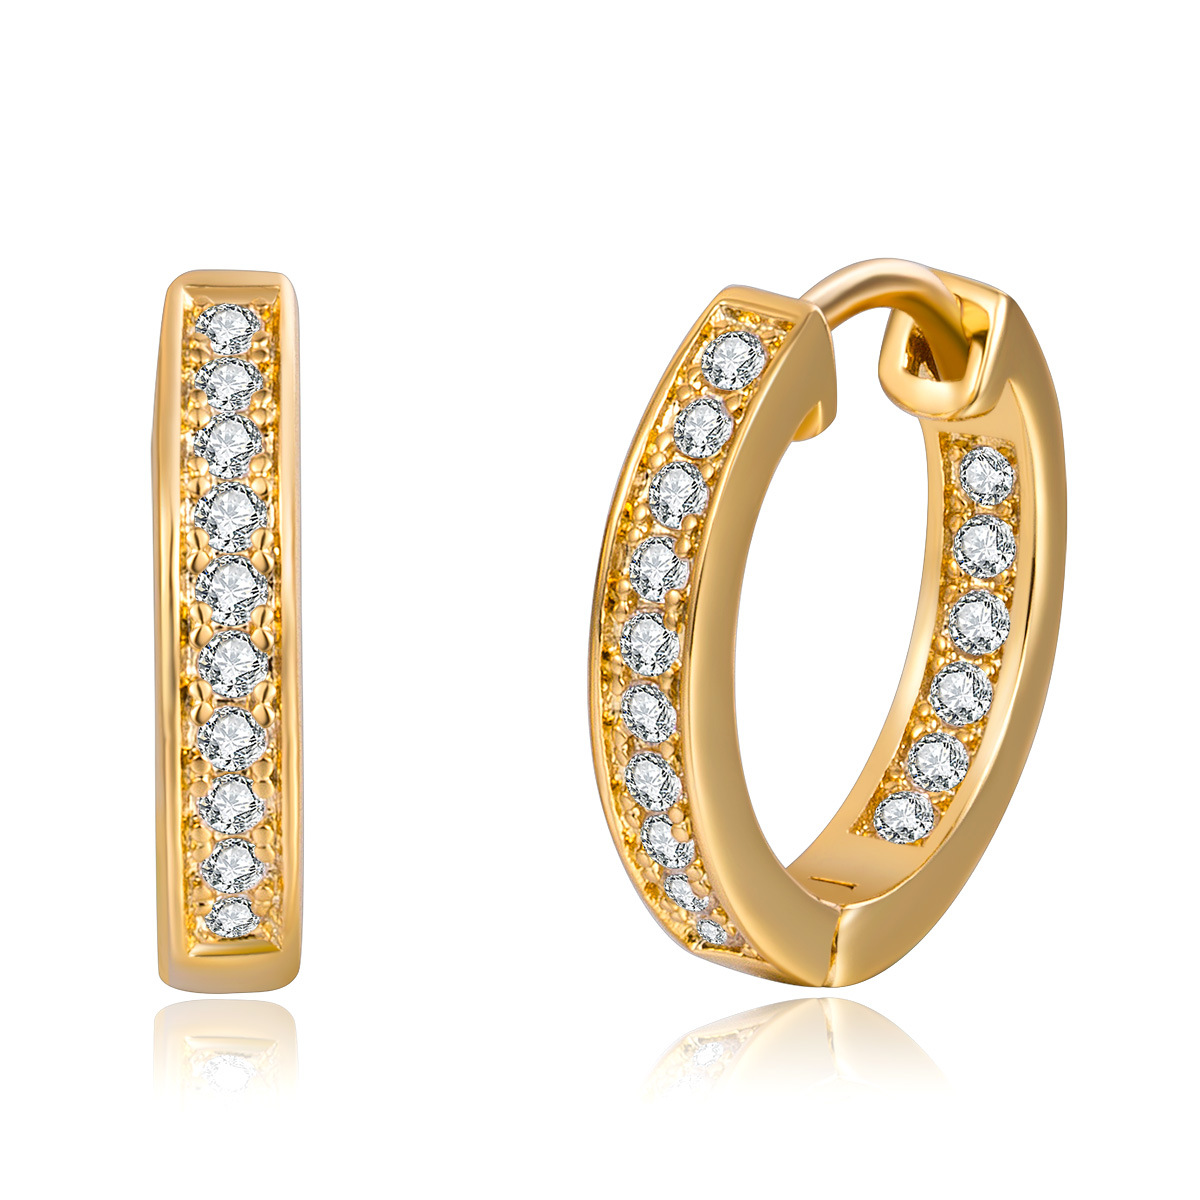 808 STORE Dubai Women Geometric Shapes Heart Shaped Hollow Gold Earrings Fashion Accessories Crystal Stud Earrings Fine Jewelry rhinestone heart shaped stud earrings page 4